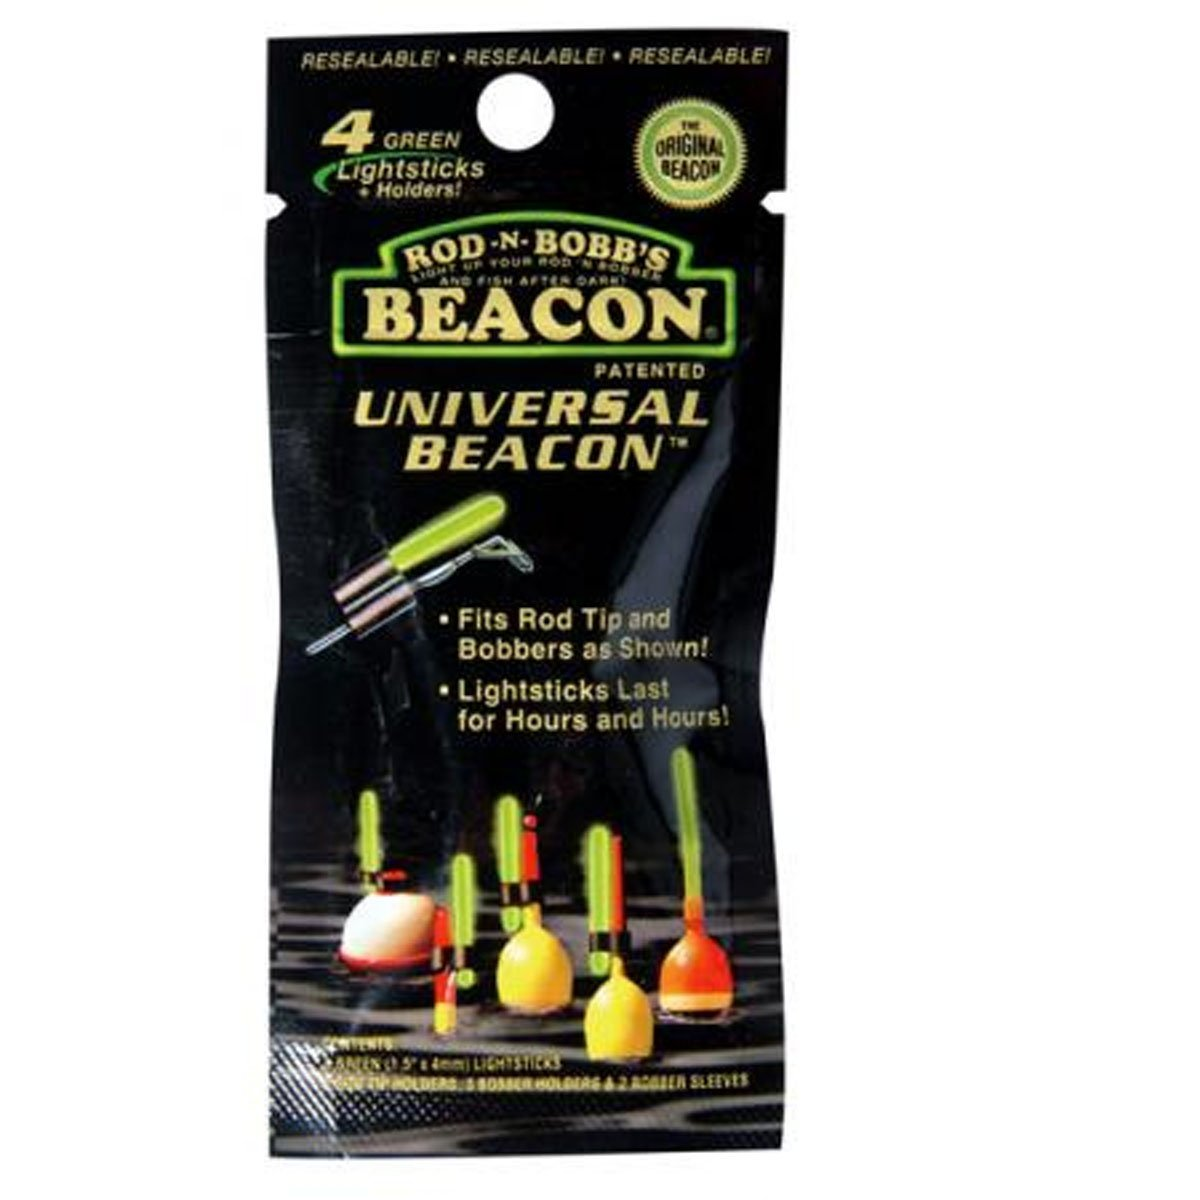 Universal Beacon Lightstick for Night Fishing Refills, Green..., By Rod-N-Bob's Ship from US by